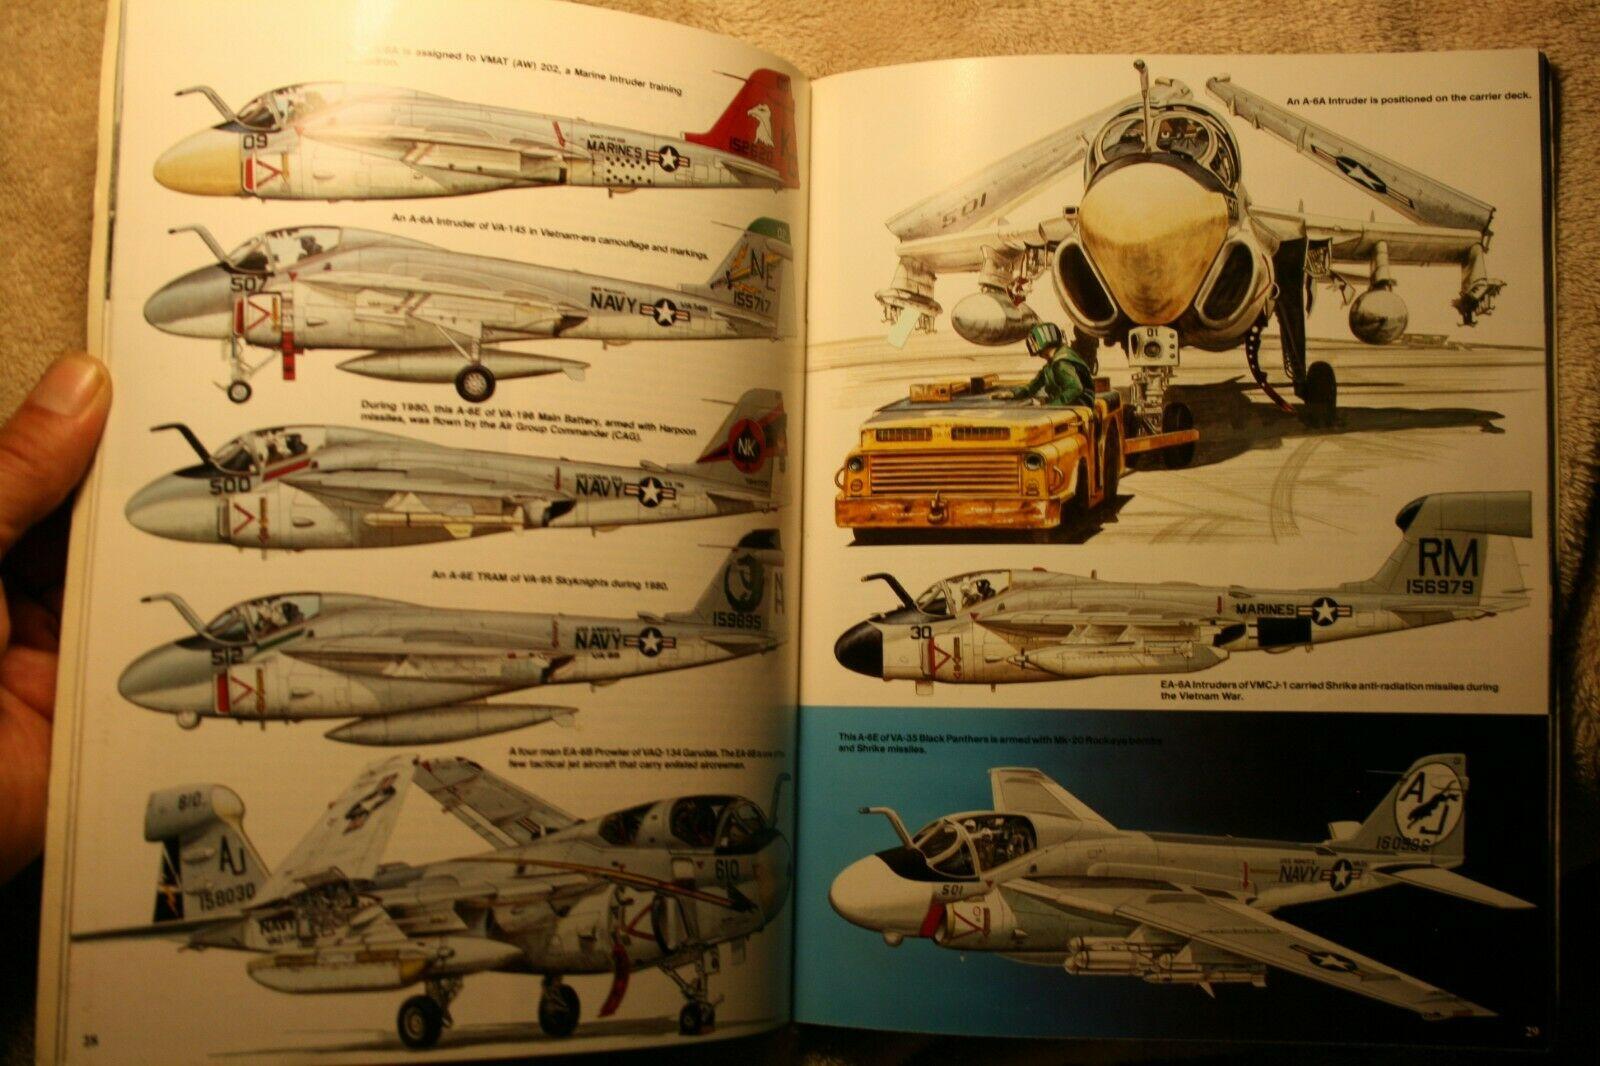 A-6 Intruder Modern Military Series Squadron Signal Book #5007 Very Good Cond. |